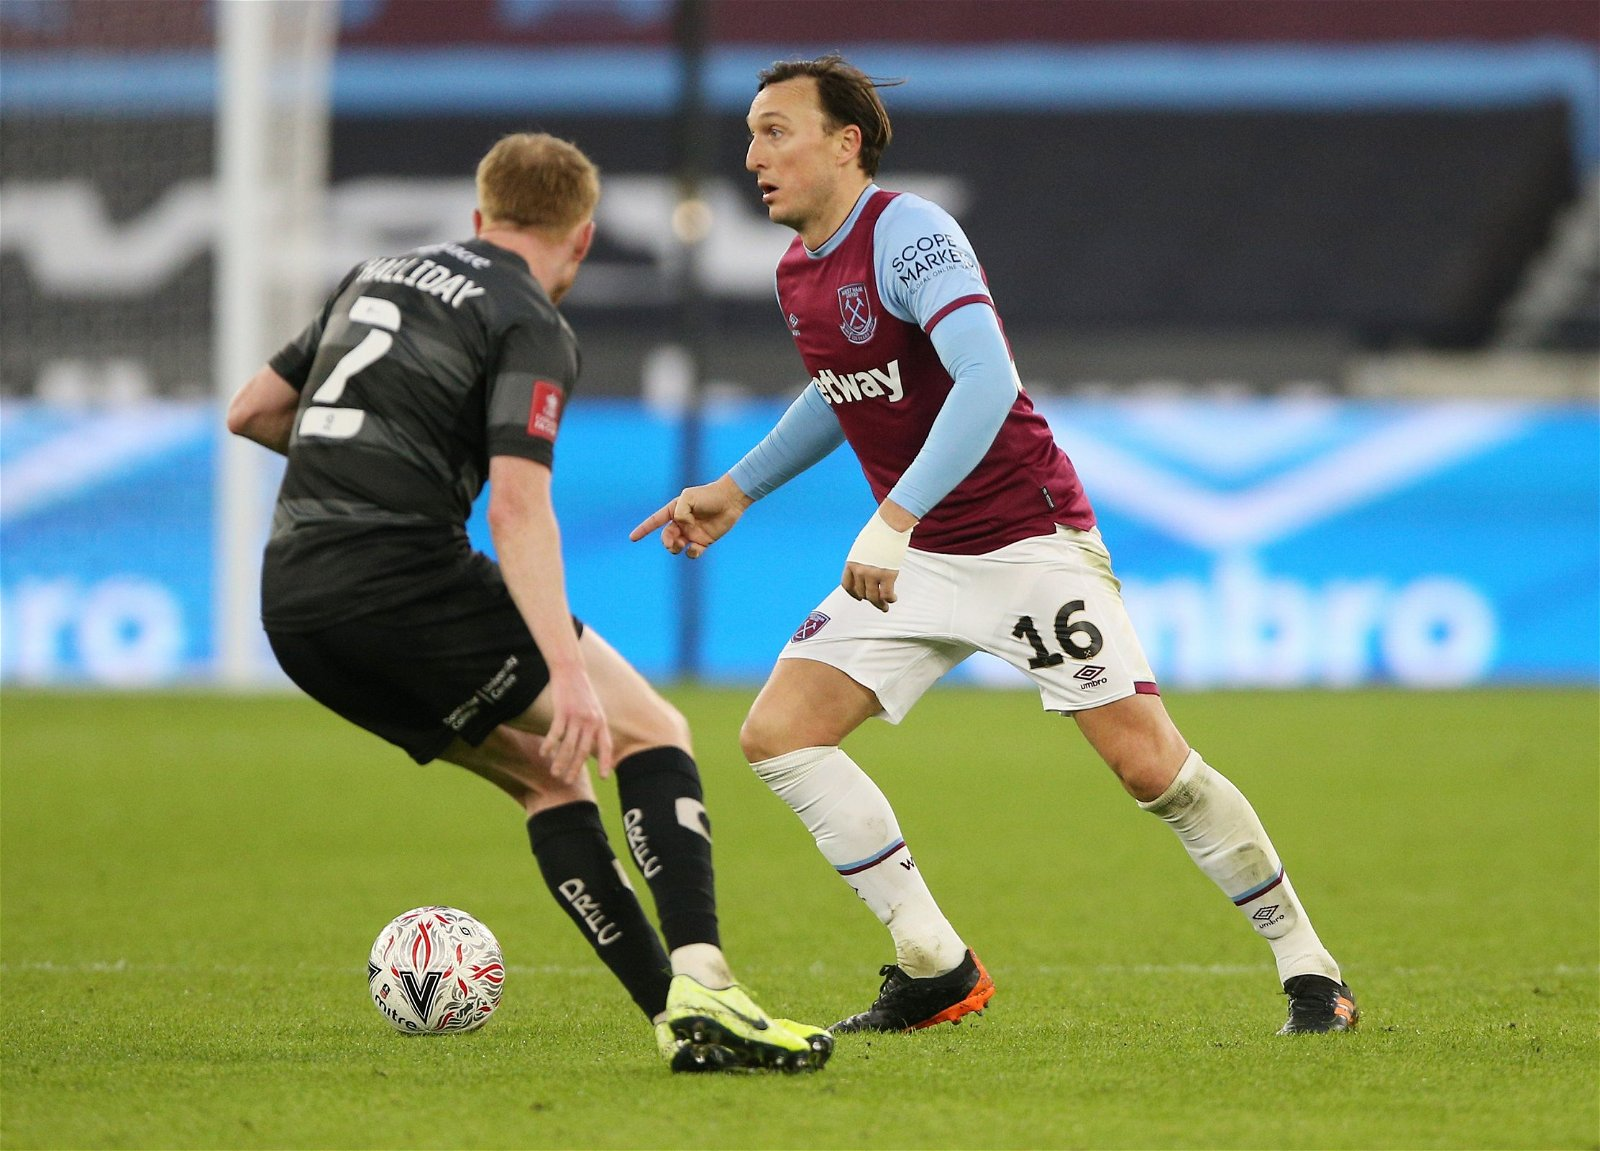 West-ham-uniteds-mark-noble-in-action-with-doncasters-bradley-halliday